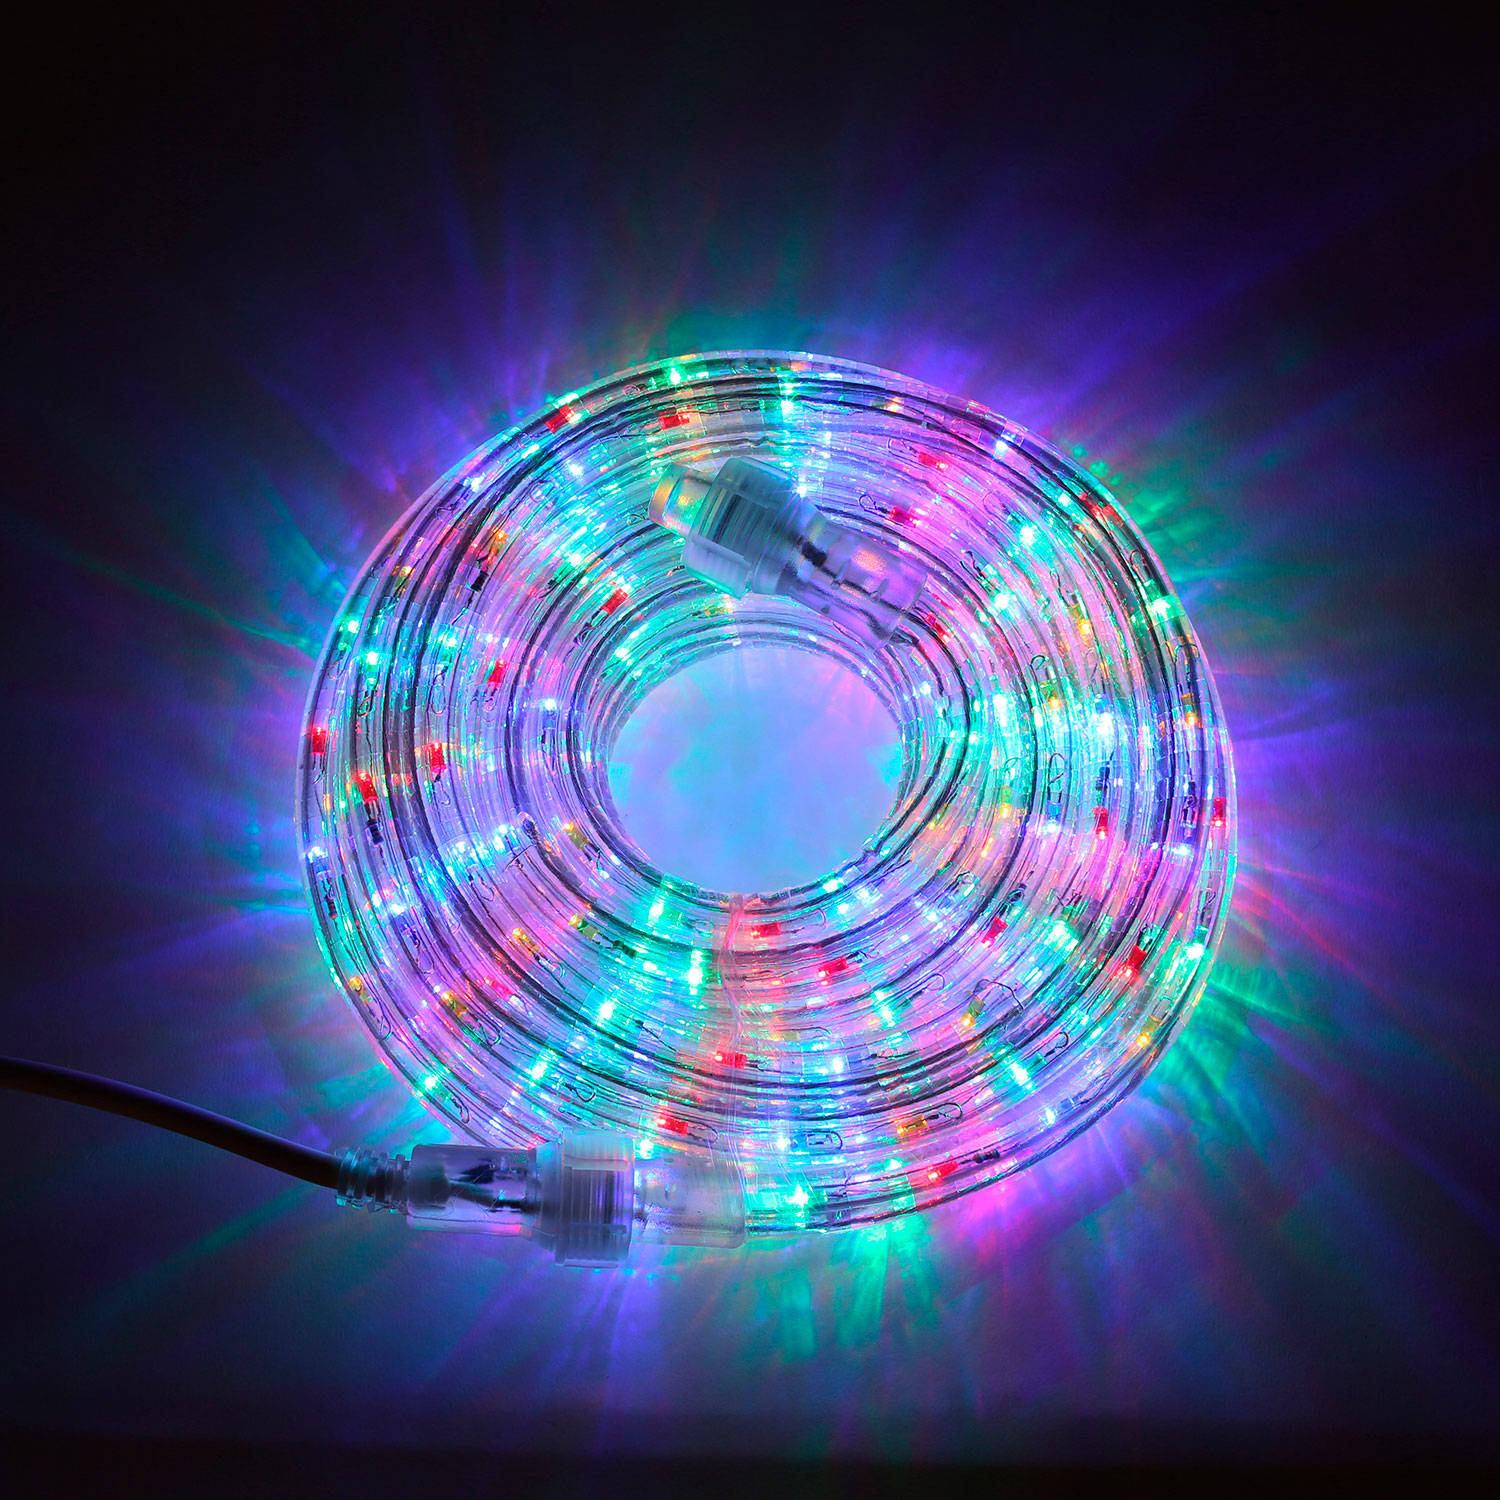 Lights.com String Lights Rope Lights Plasma Multicolor Super Bright LED Rope Lights